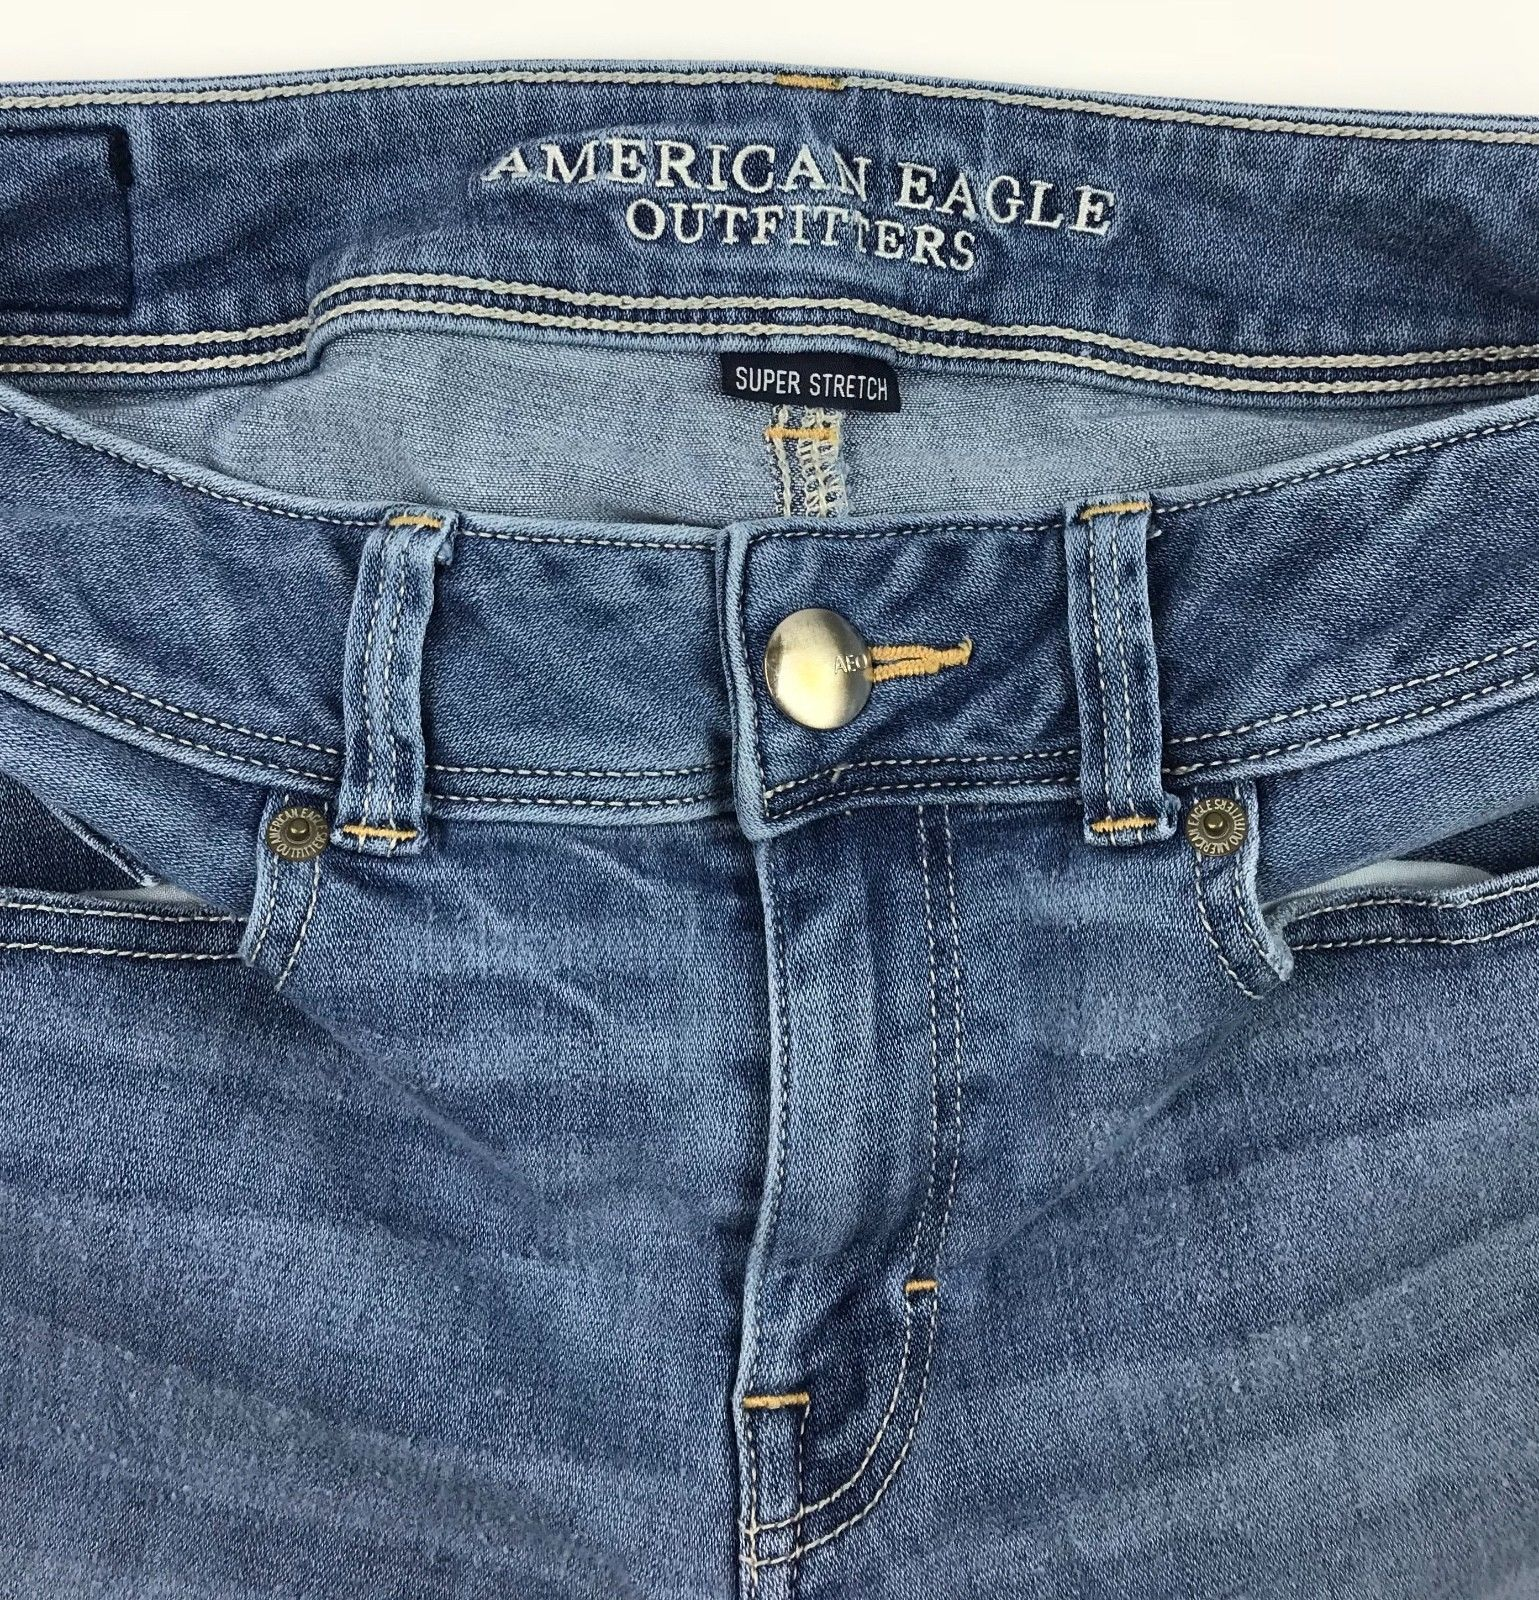 American Eagle Outfitters Super Stretch Kick Boot Denim Blue Jeans Women's 8R image 2